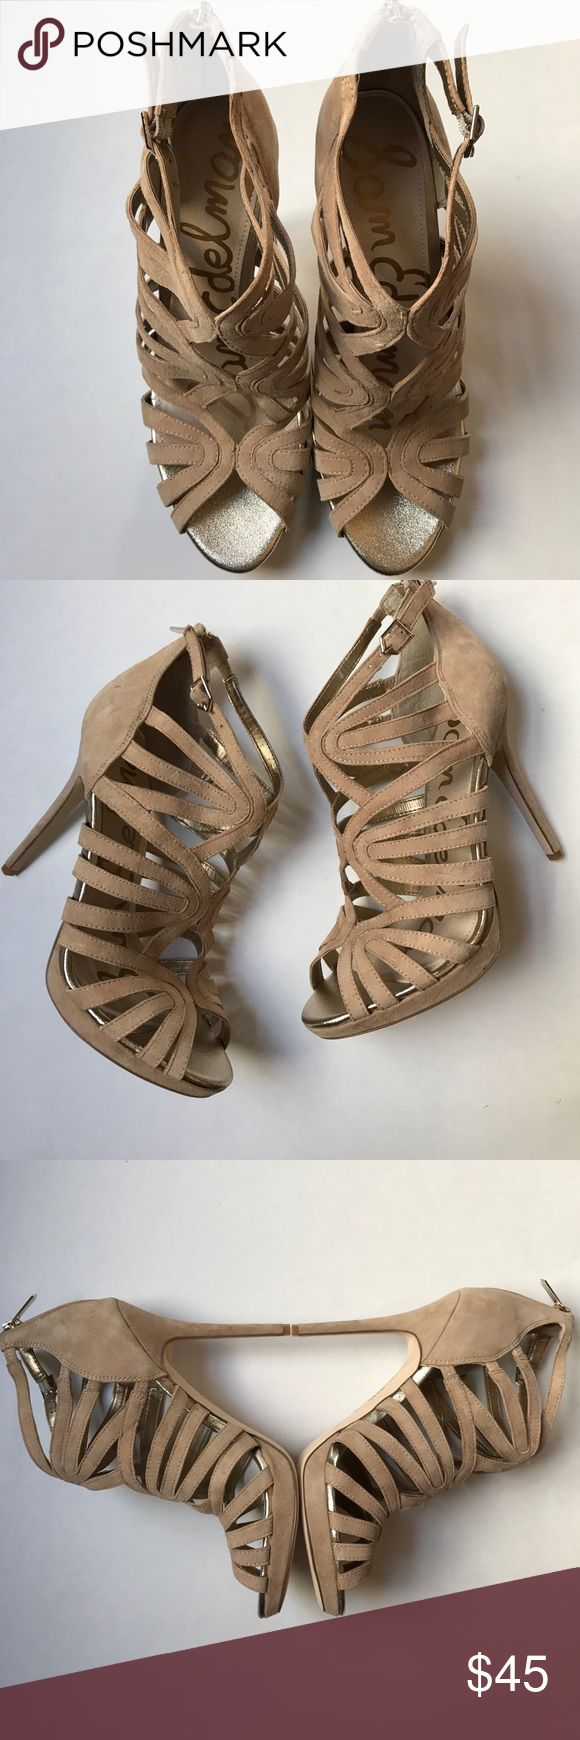 NWOT Sam Edelman Eve Caged Sandals NWOT Sam Edelman Eve Caged Sandals. No box. 5.5 inch total heel height. .5 inch platform. Suede upper. Bootie style Sandal with back zip closure. Sam Edelman Shoes Sandals